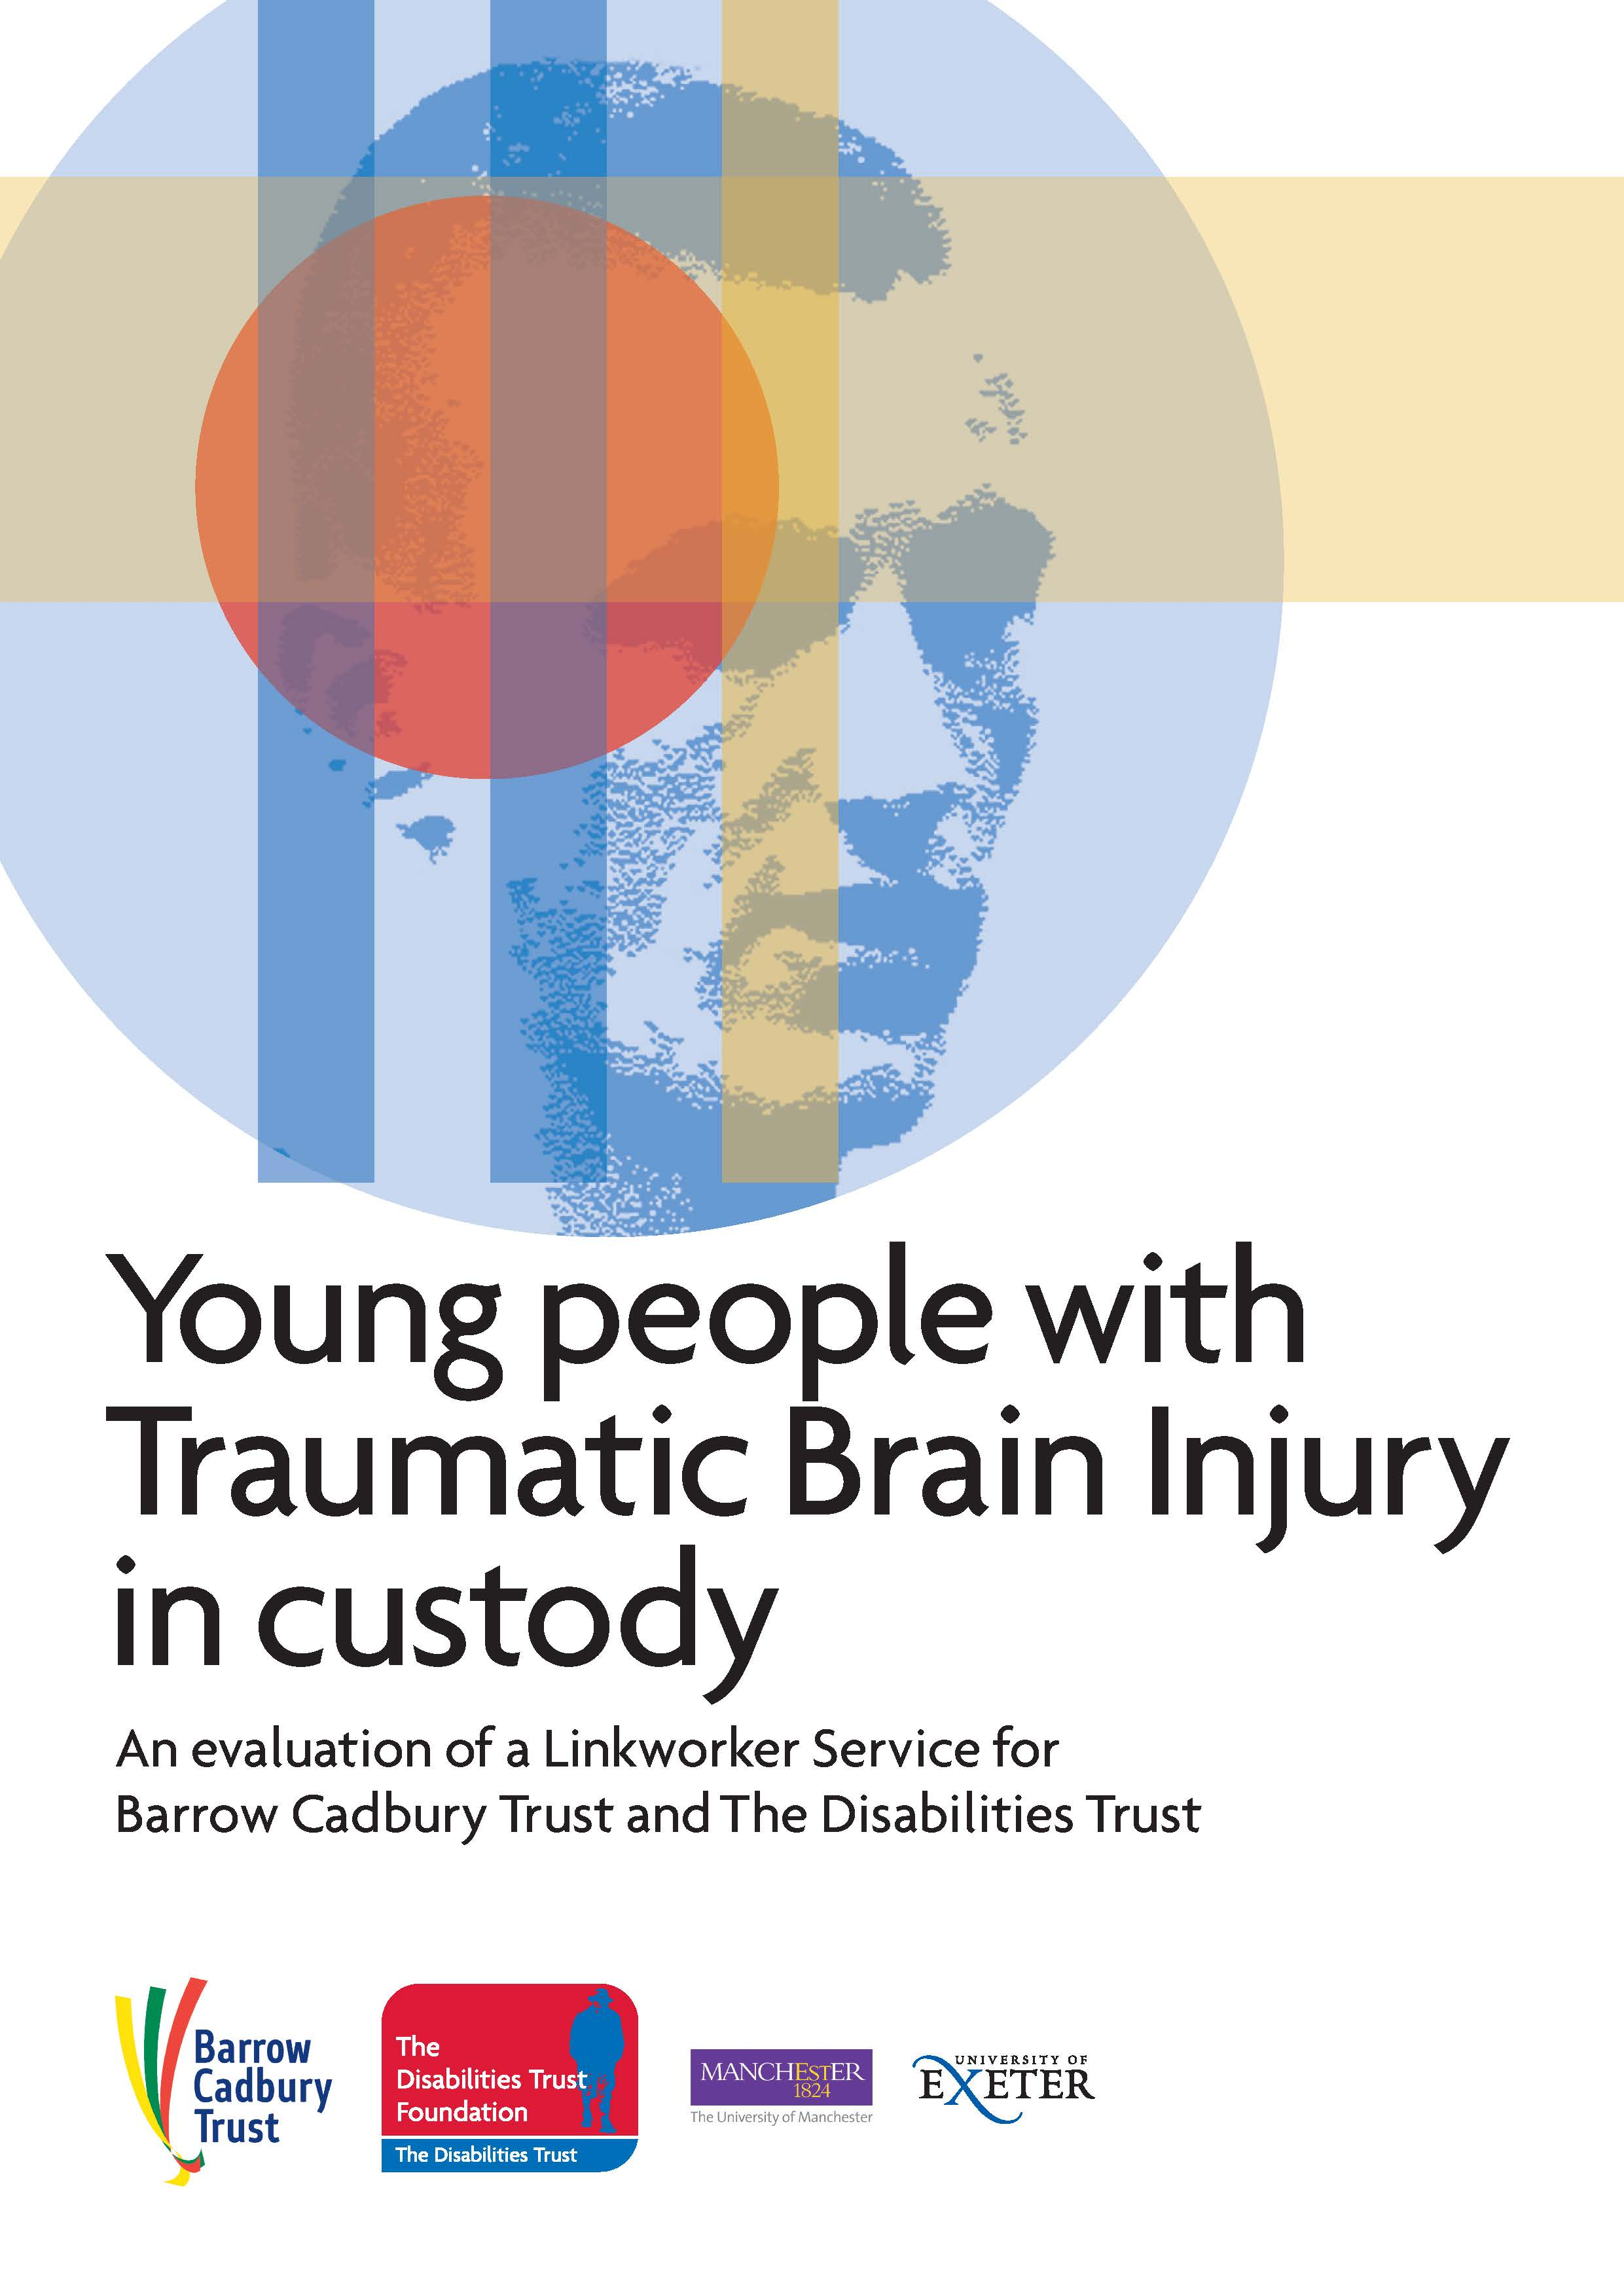 A Population-Based Study of Inflicted Traumatic Brain Injury in Young Children